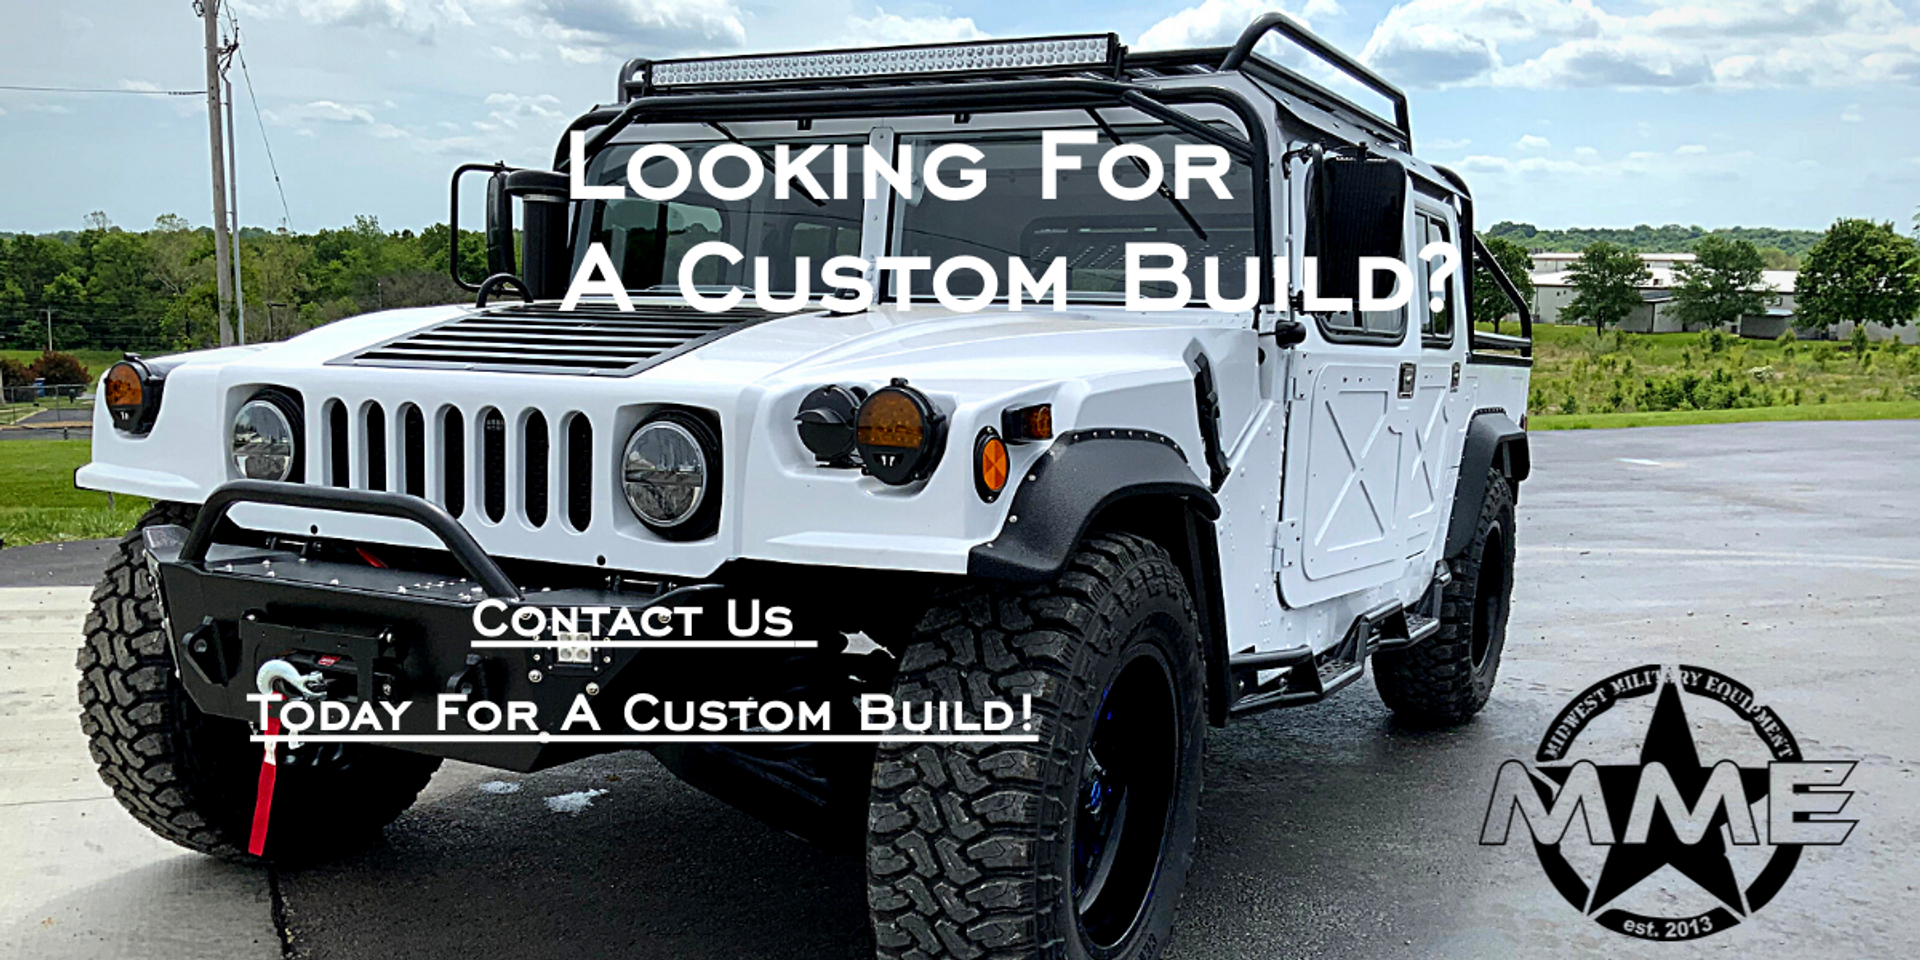 Call Today For A Custom Build!